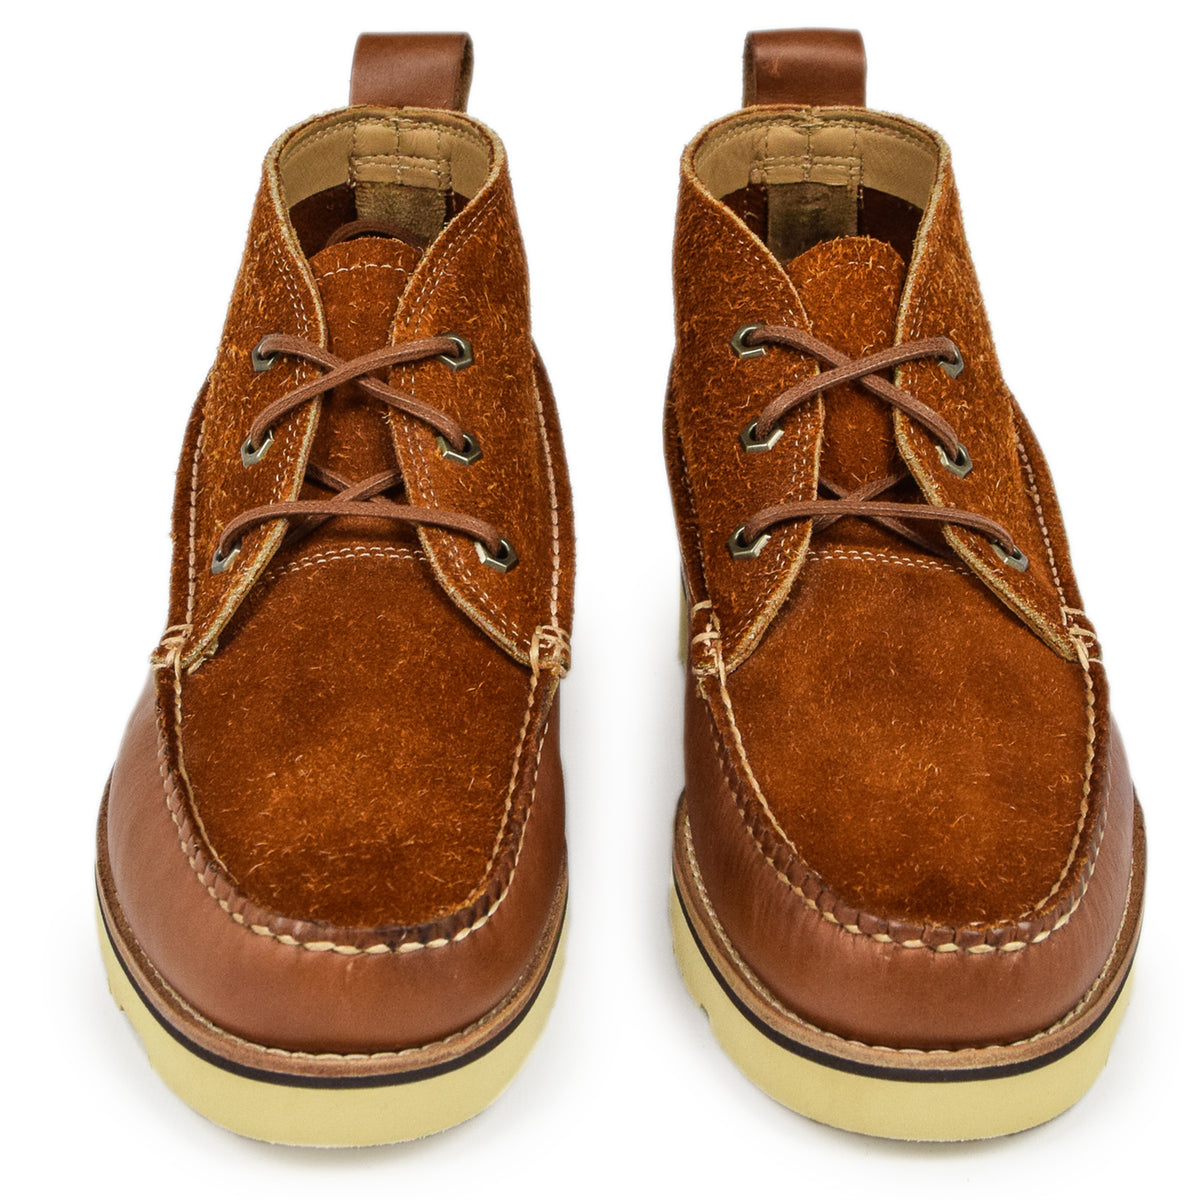 G.H. Bass & Co. Camp Moc III Ranger Boot Mid Tan Leather & Suede